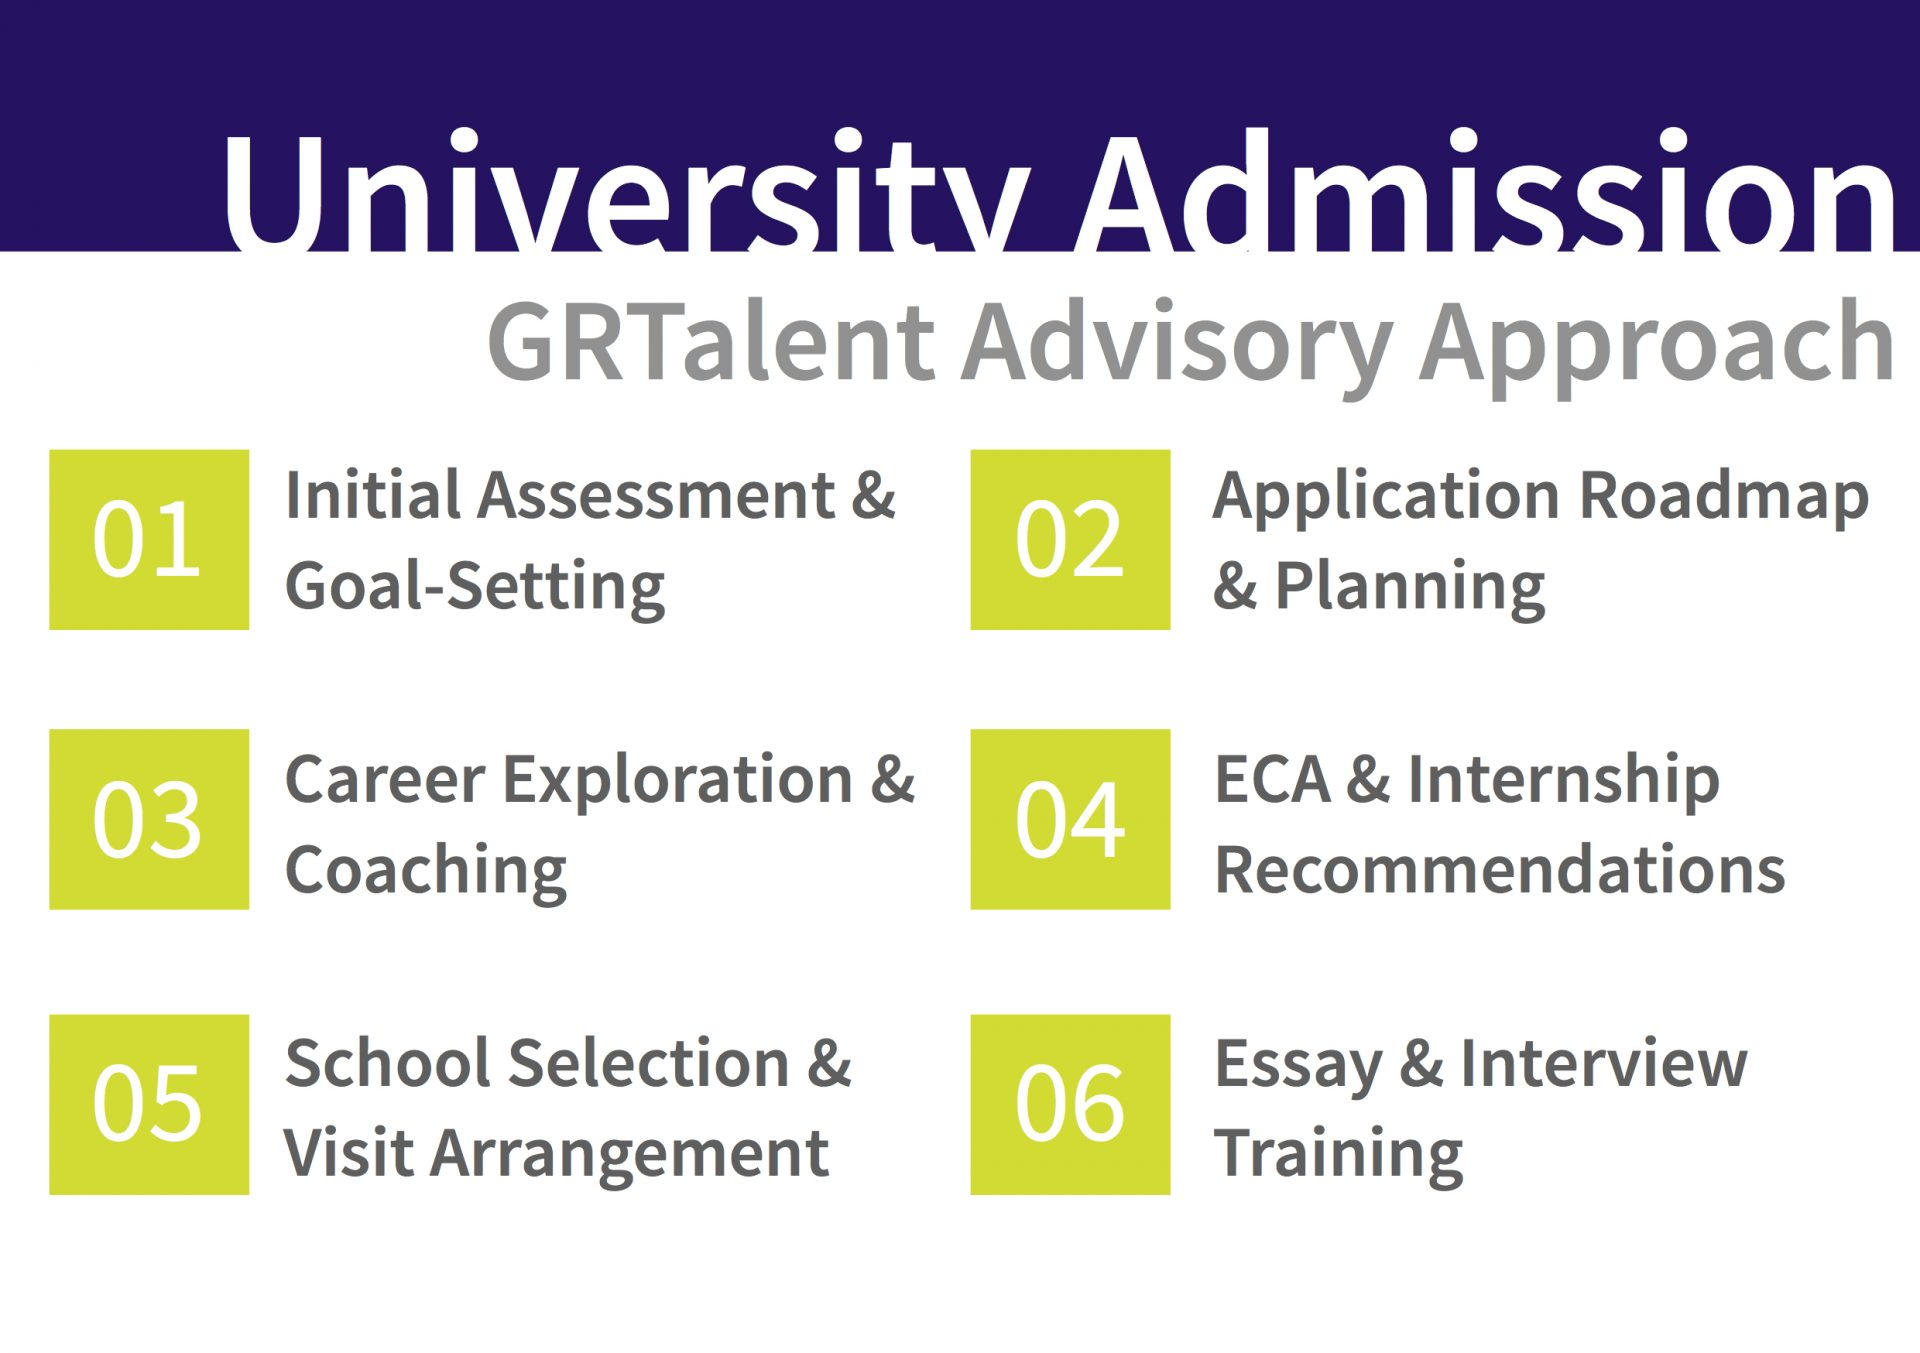 GRTalent University Admission Consulting